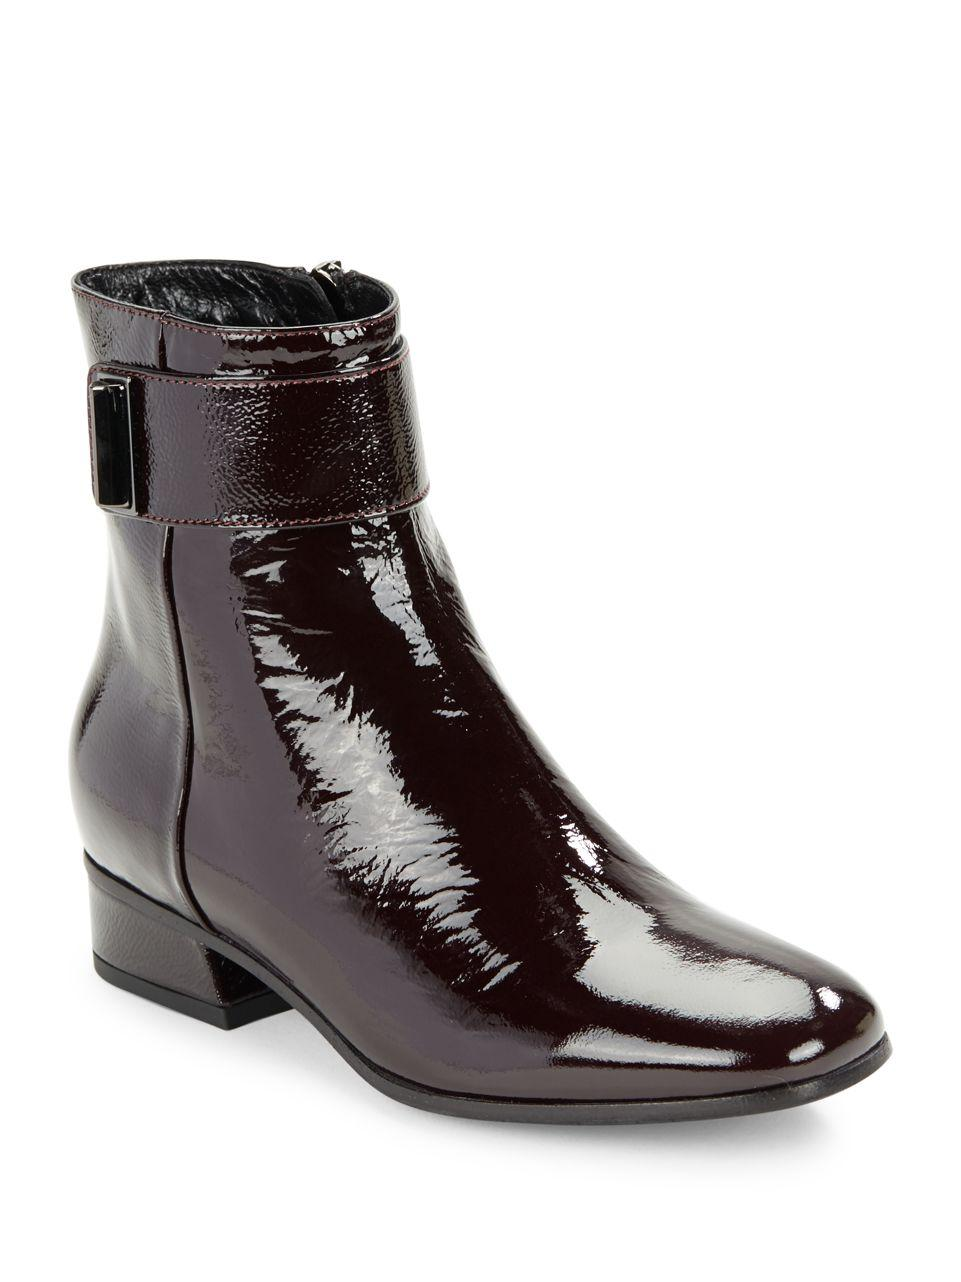 Lyst Aquatalia Lupita Patent Leather Ankle Boots In Brown